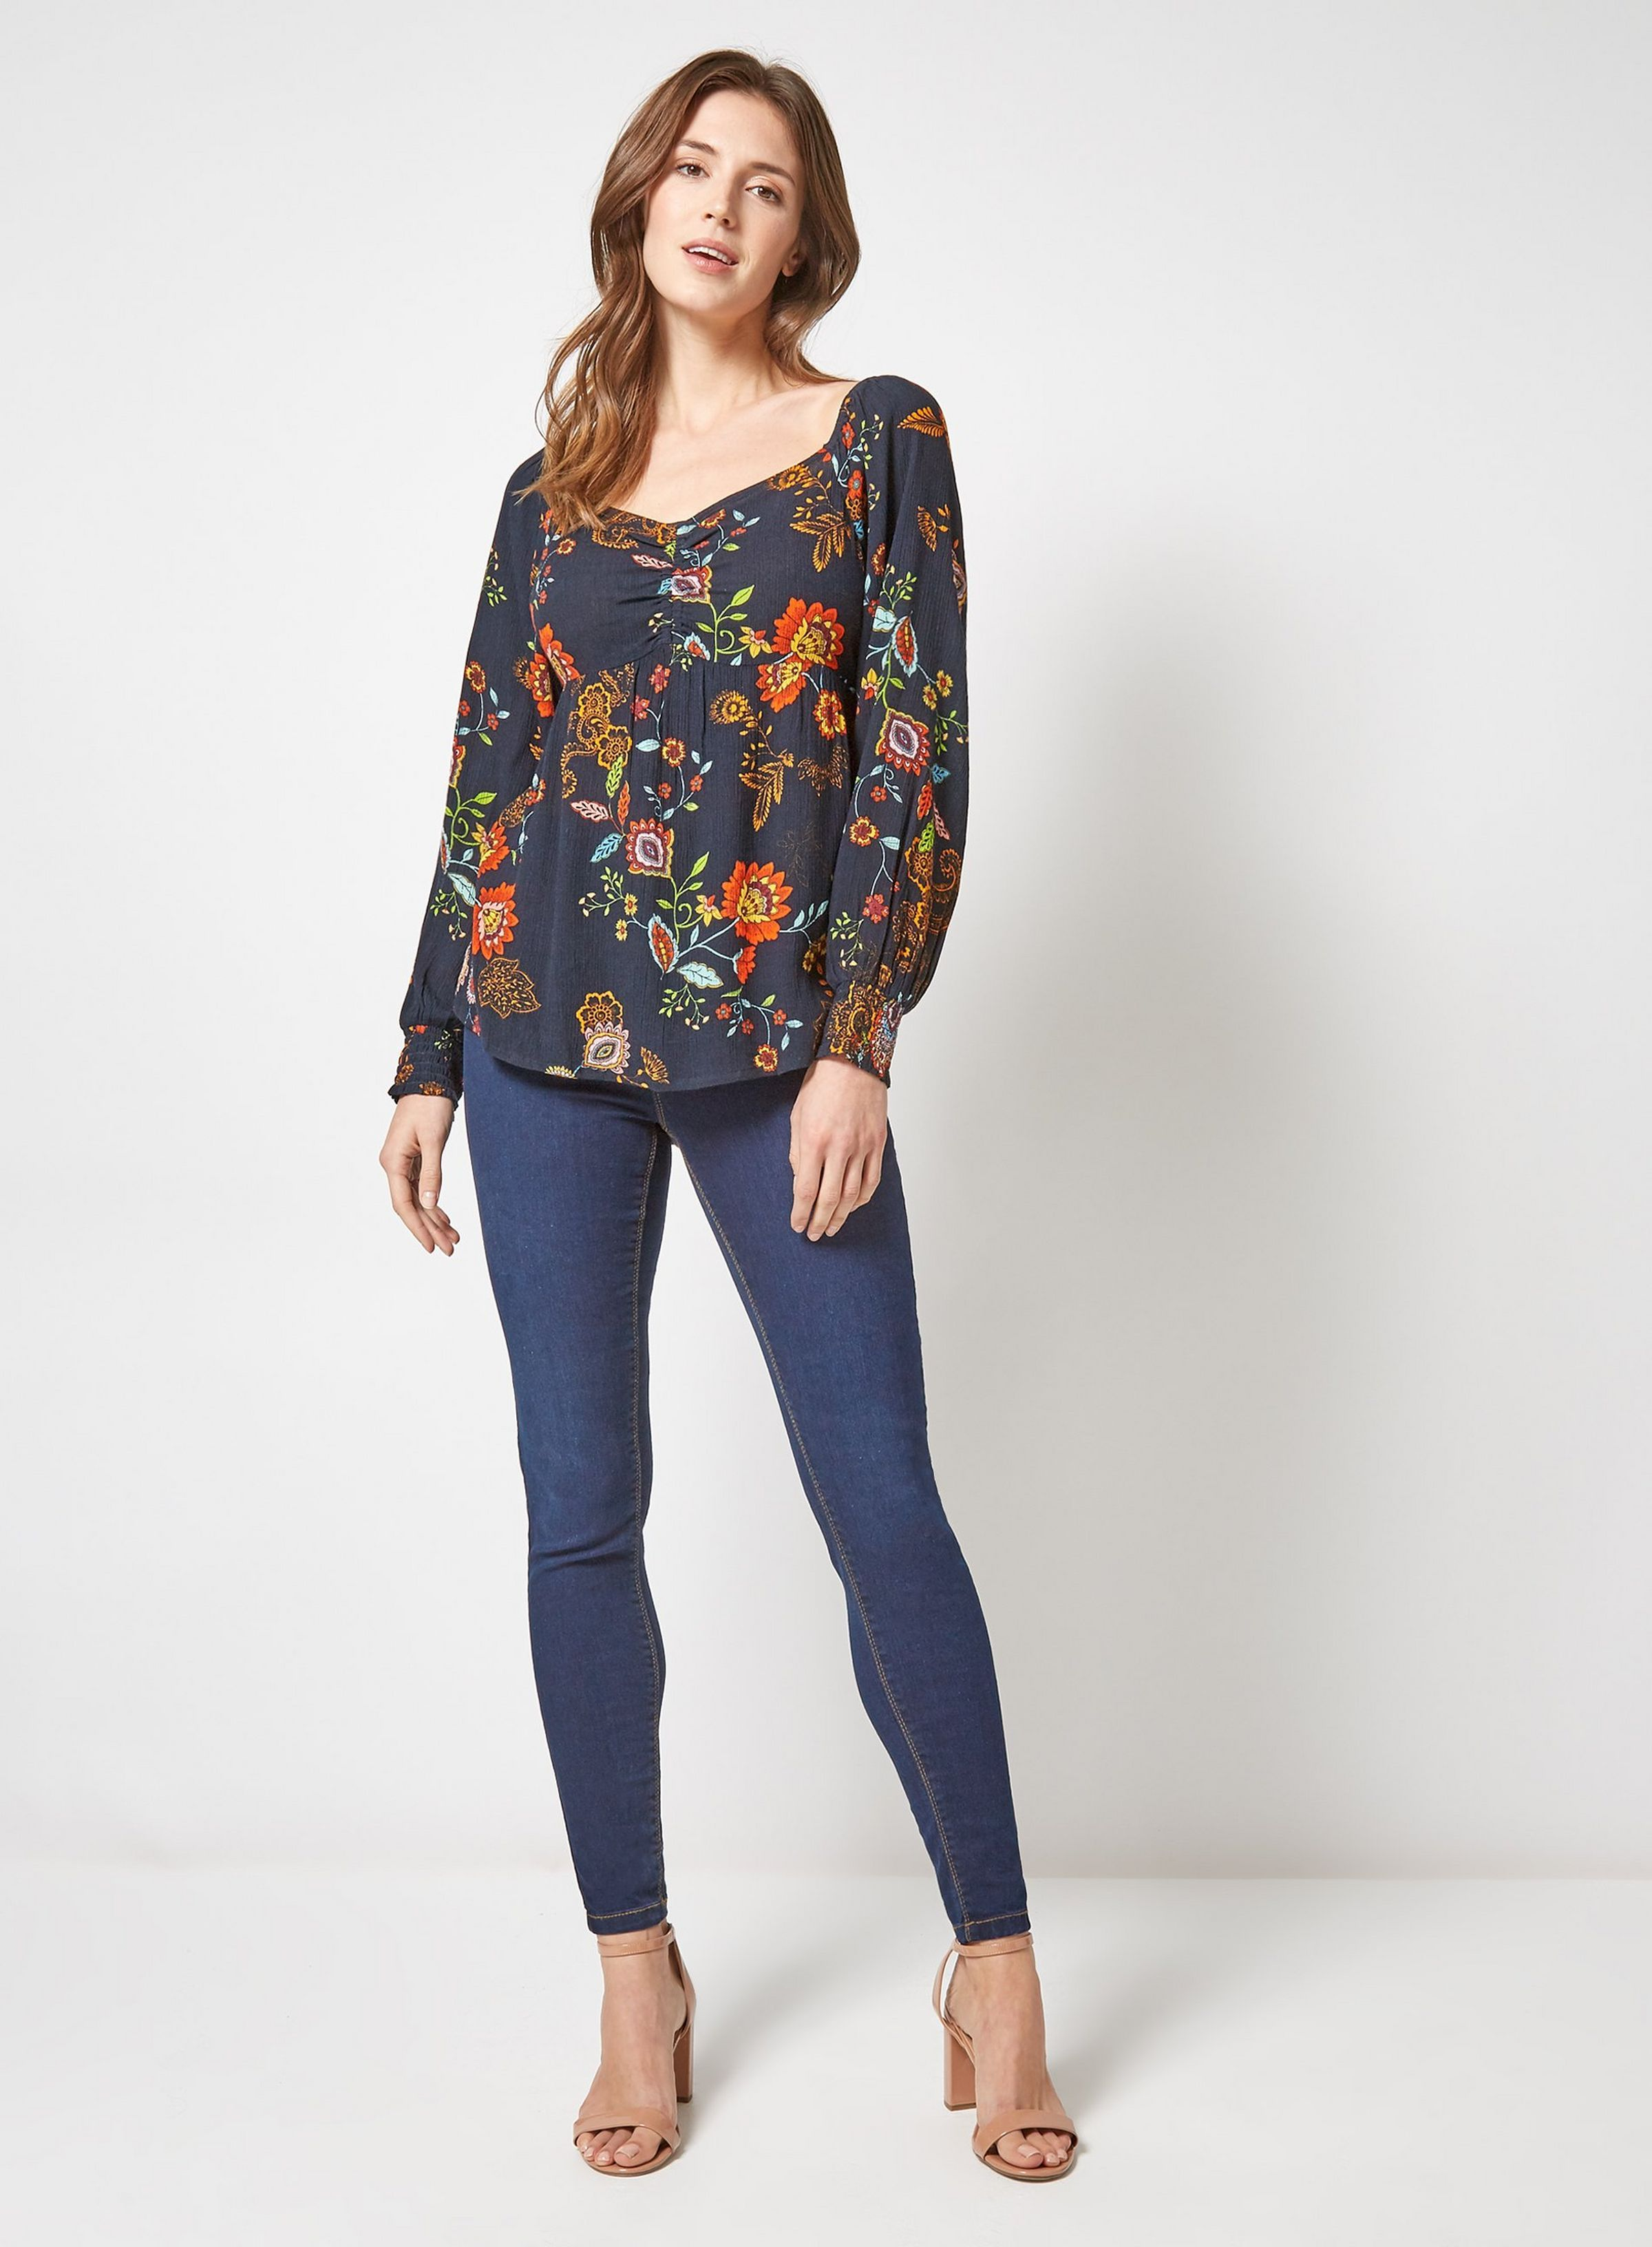 07477acb81bffb Carousel Image 3 Off Shoulder Blouse, Bell Sleeves, Bell Sleeve Top,  Carousel,